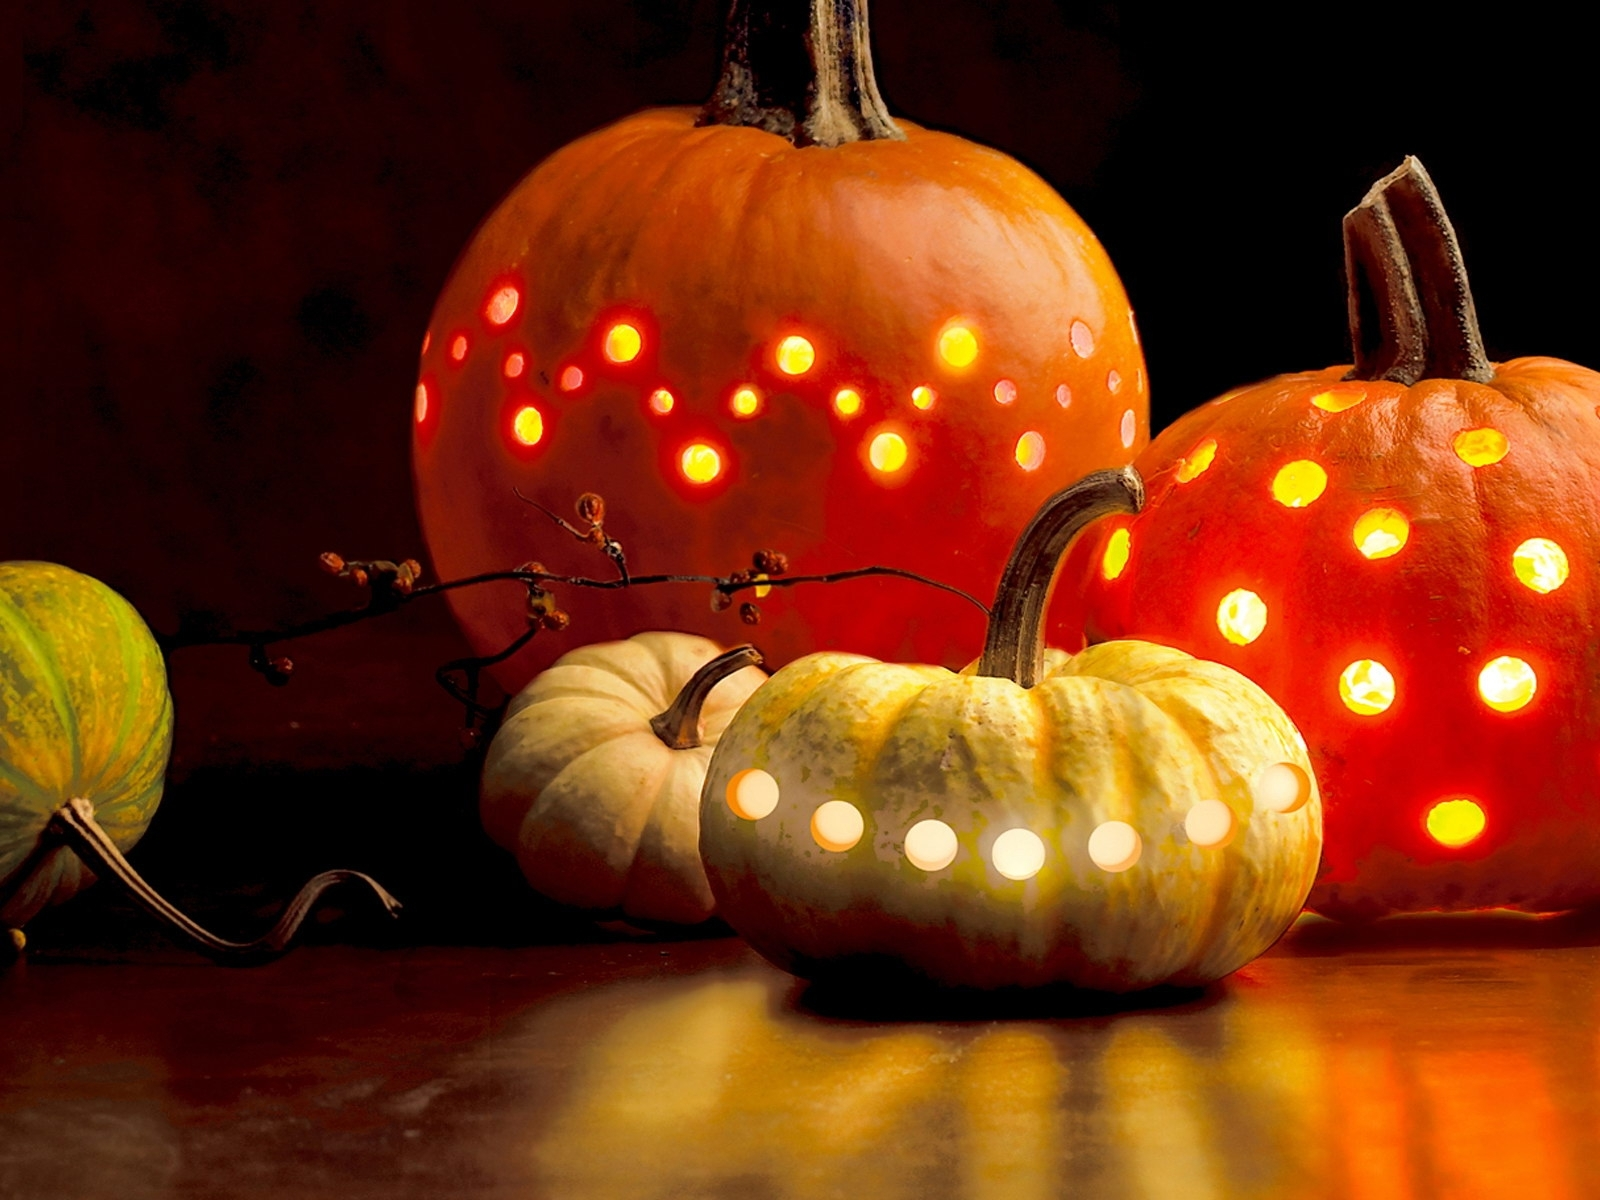 pumpkin wallpaper 25768 1600x1200 px ~ hdwallsource